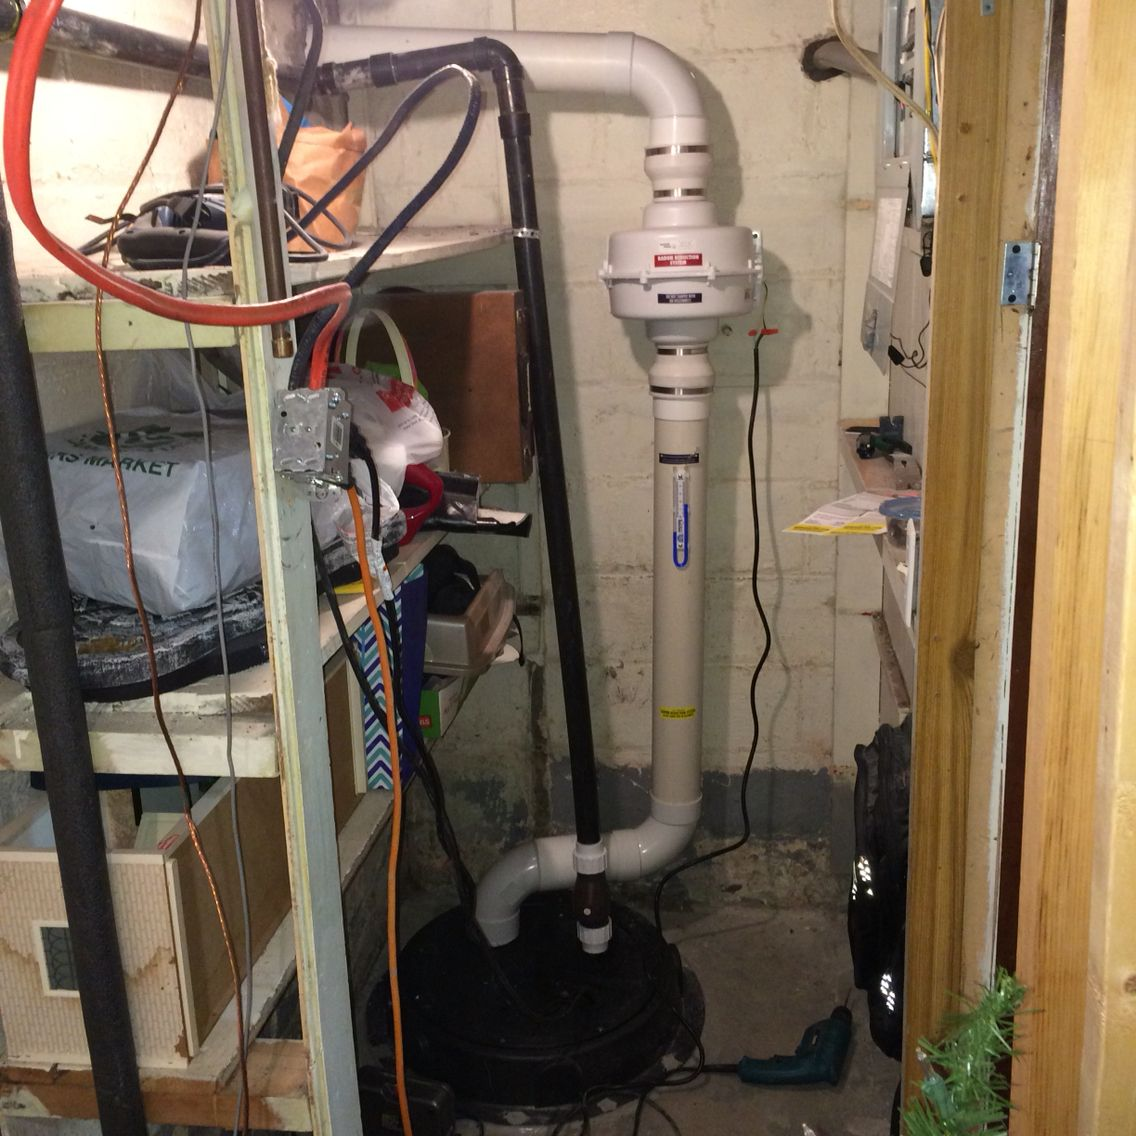 Radon Mitigation System In Basement Closet Radon Pinterest - Radon in basements